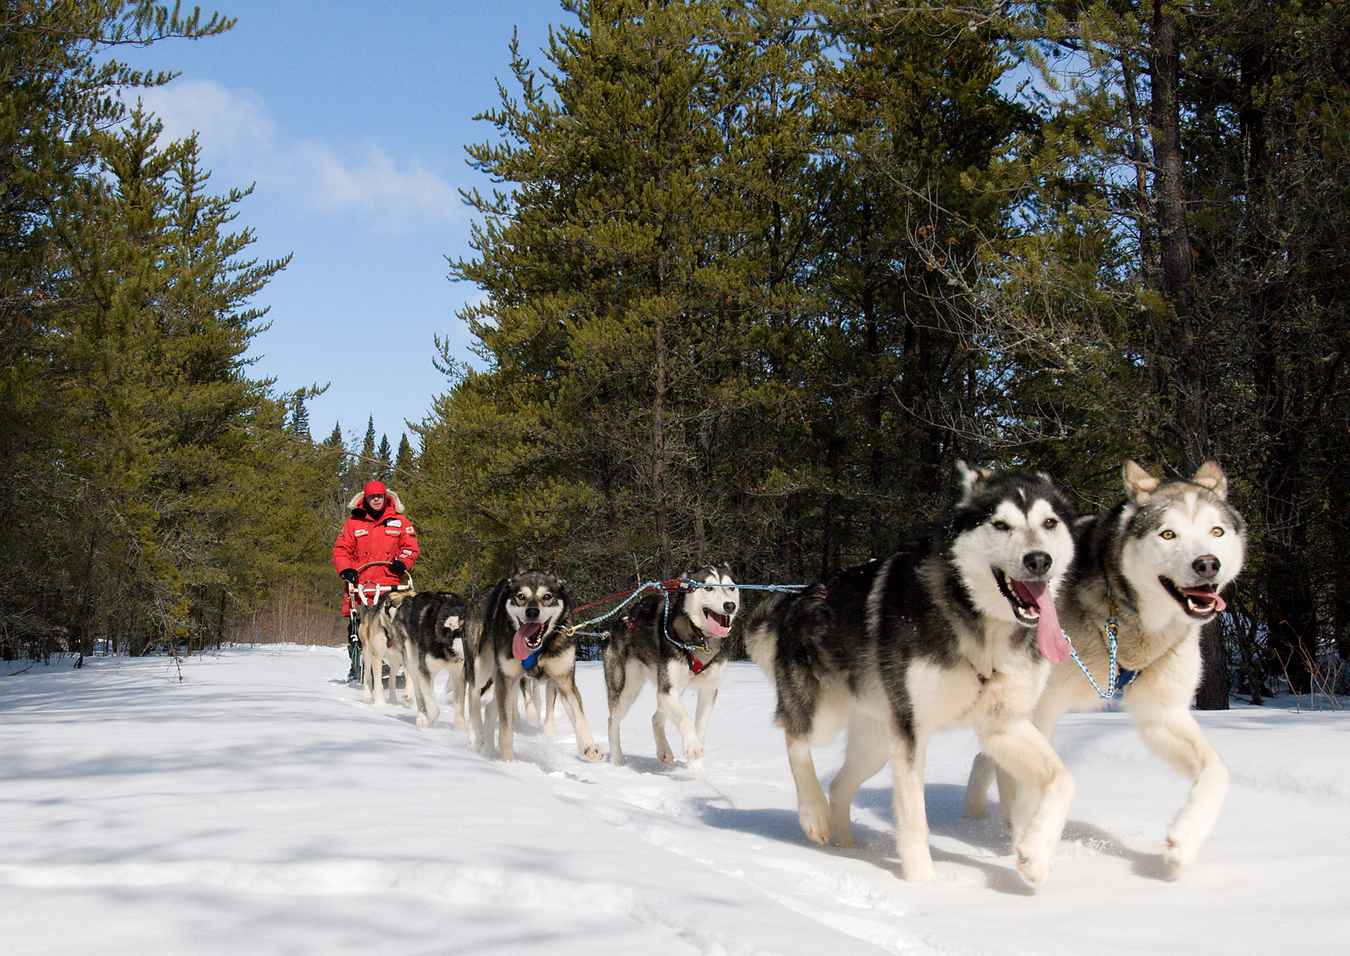 Dogs pulling a sled at Anglin Lake in Saskatchewan